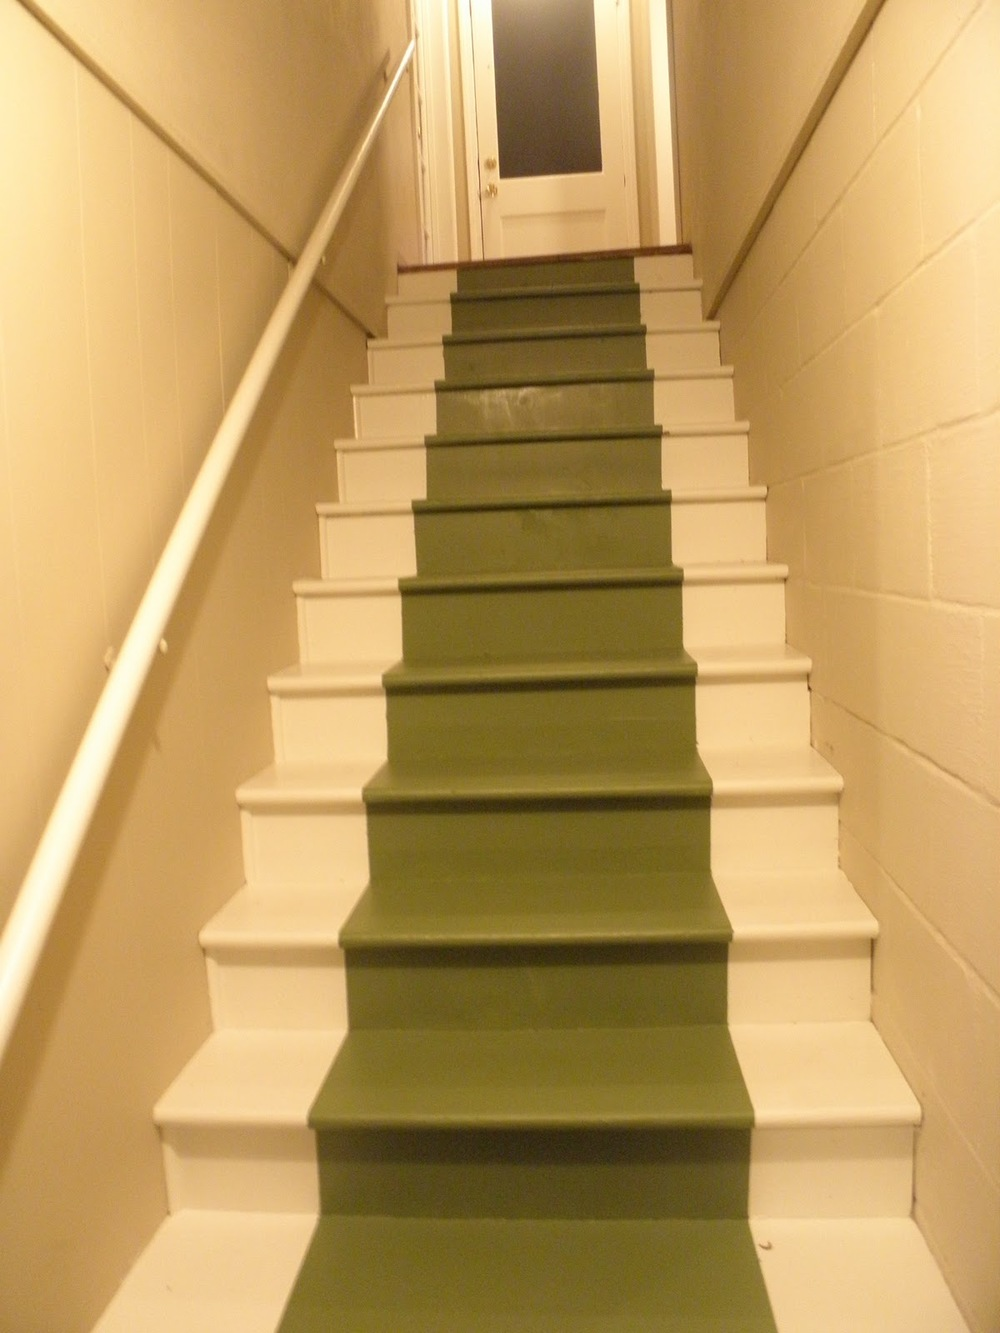 Installing basement stairs stair contractors 844 my stair - Ideas for basement stairs ...